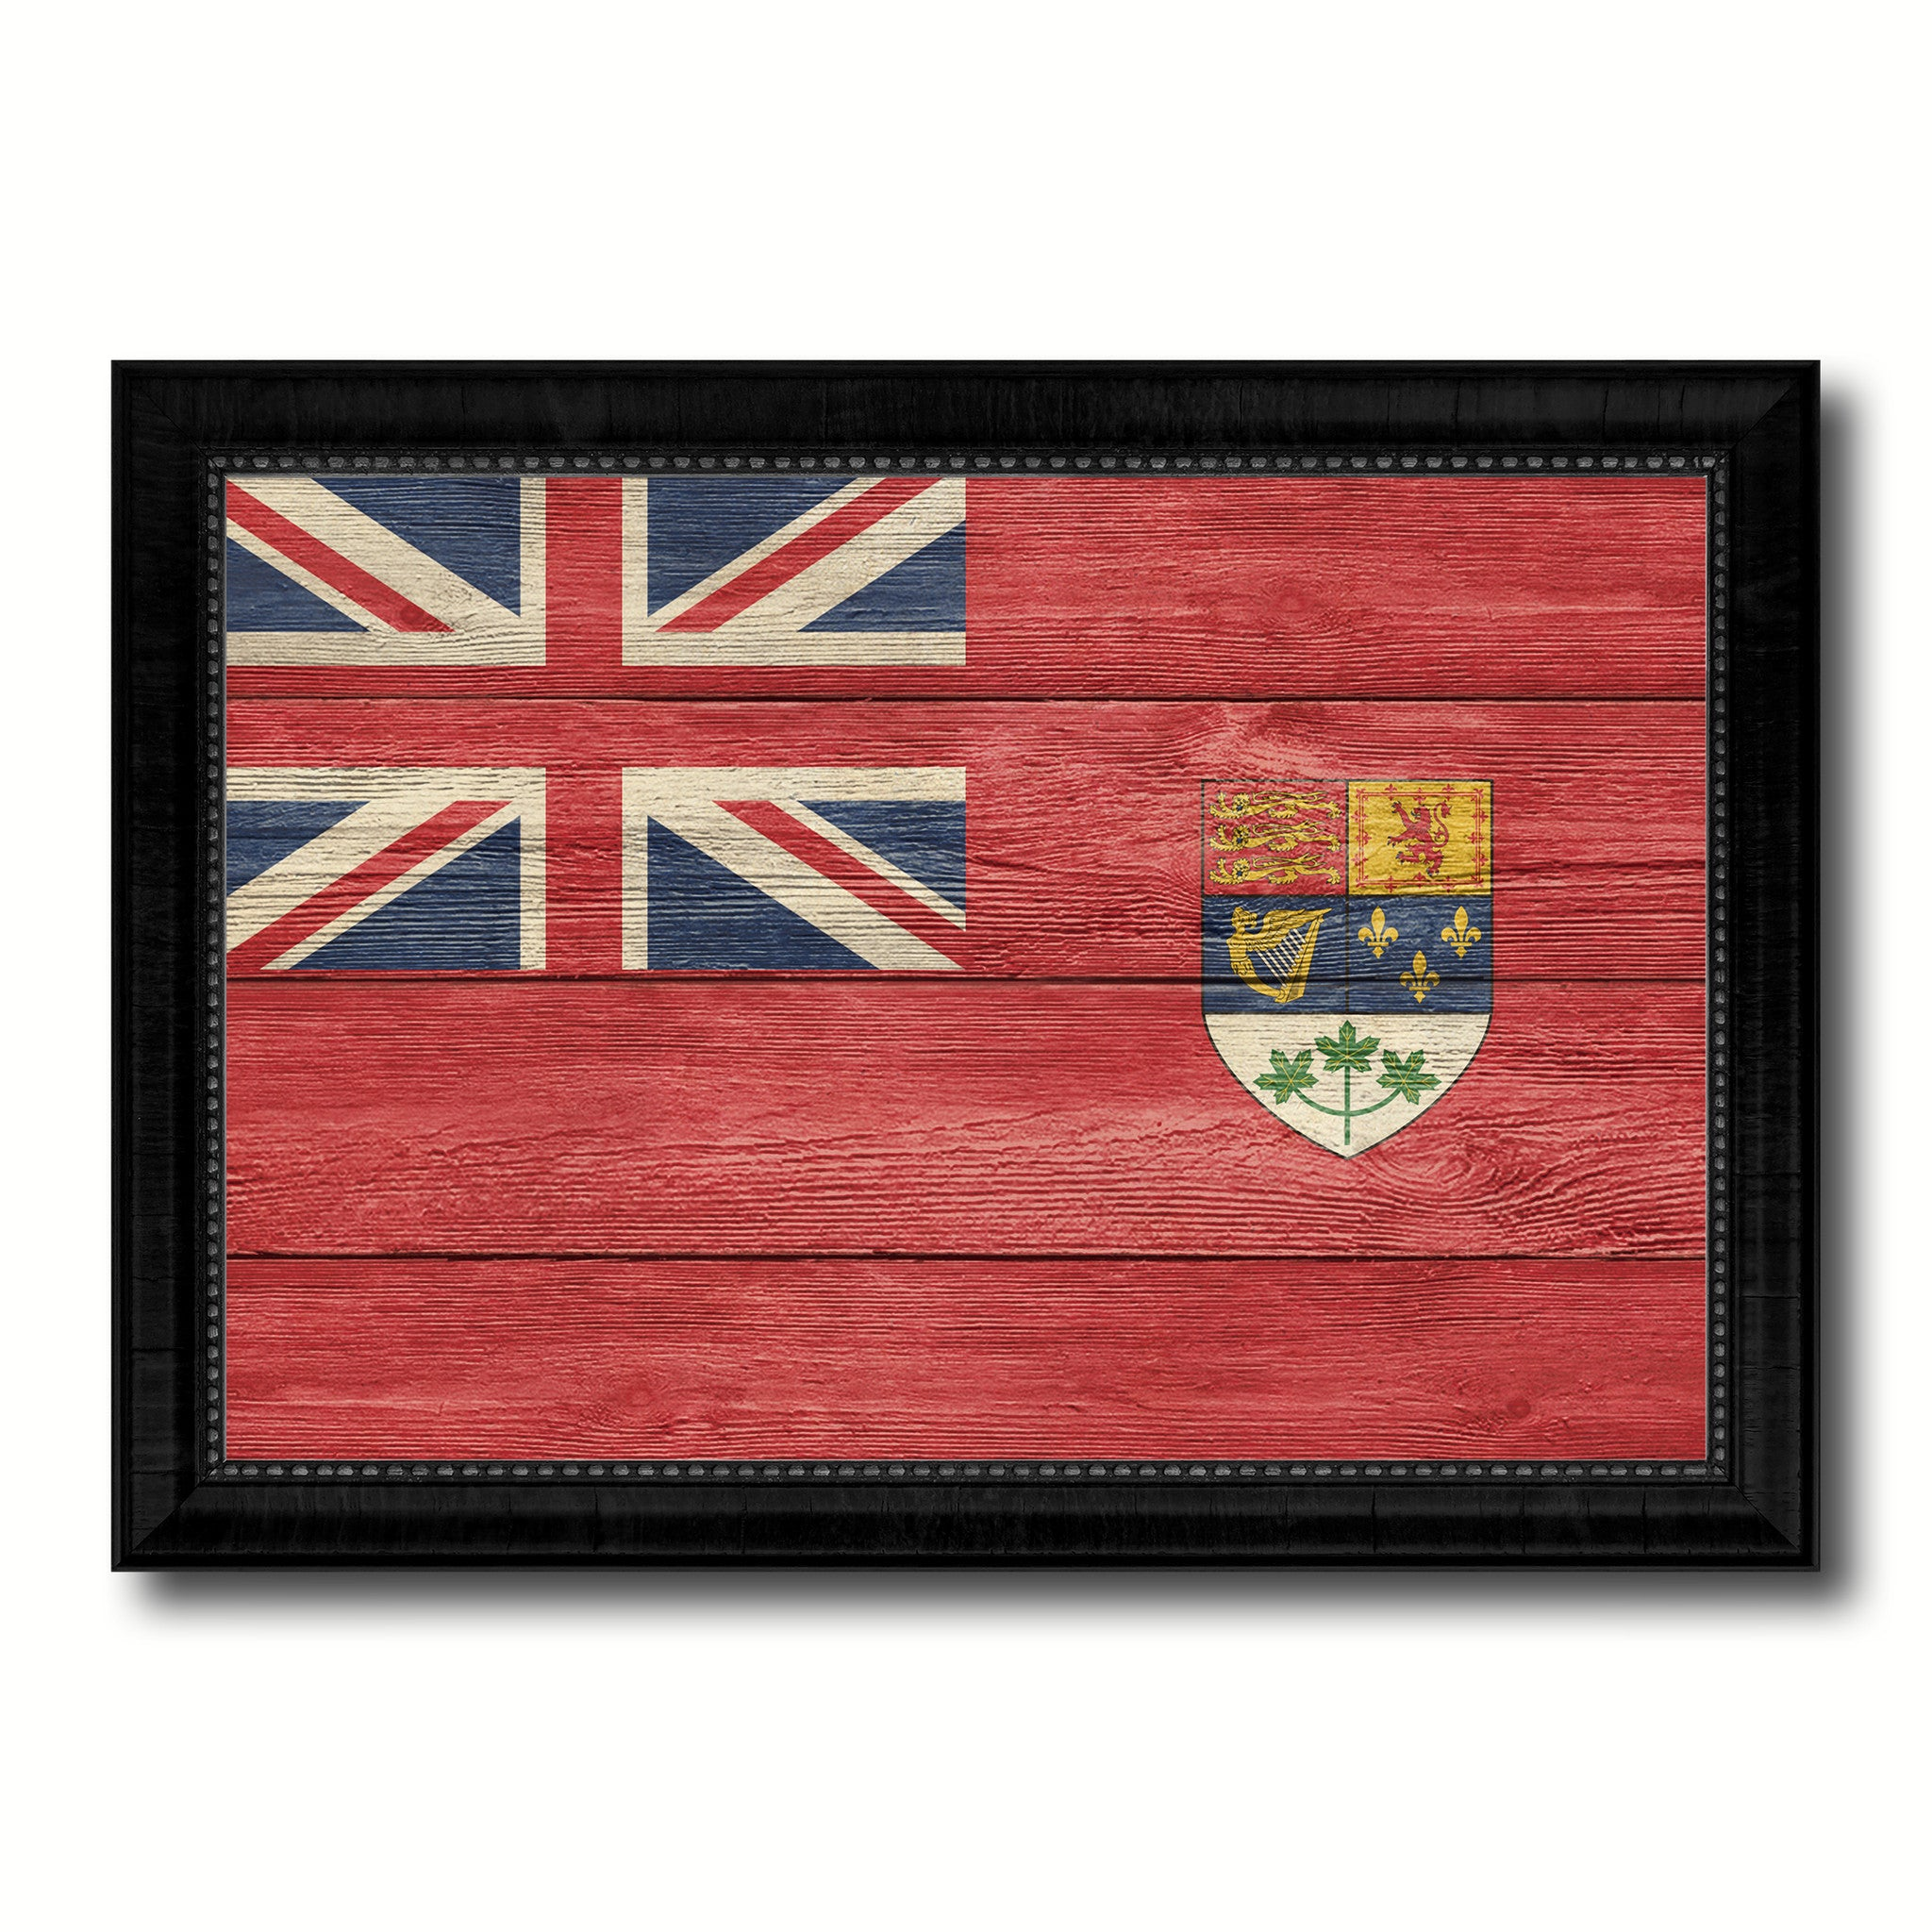 Canadian Red Ensign City Canada Country Texture Flag Canvas Print Black Picture Frame